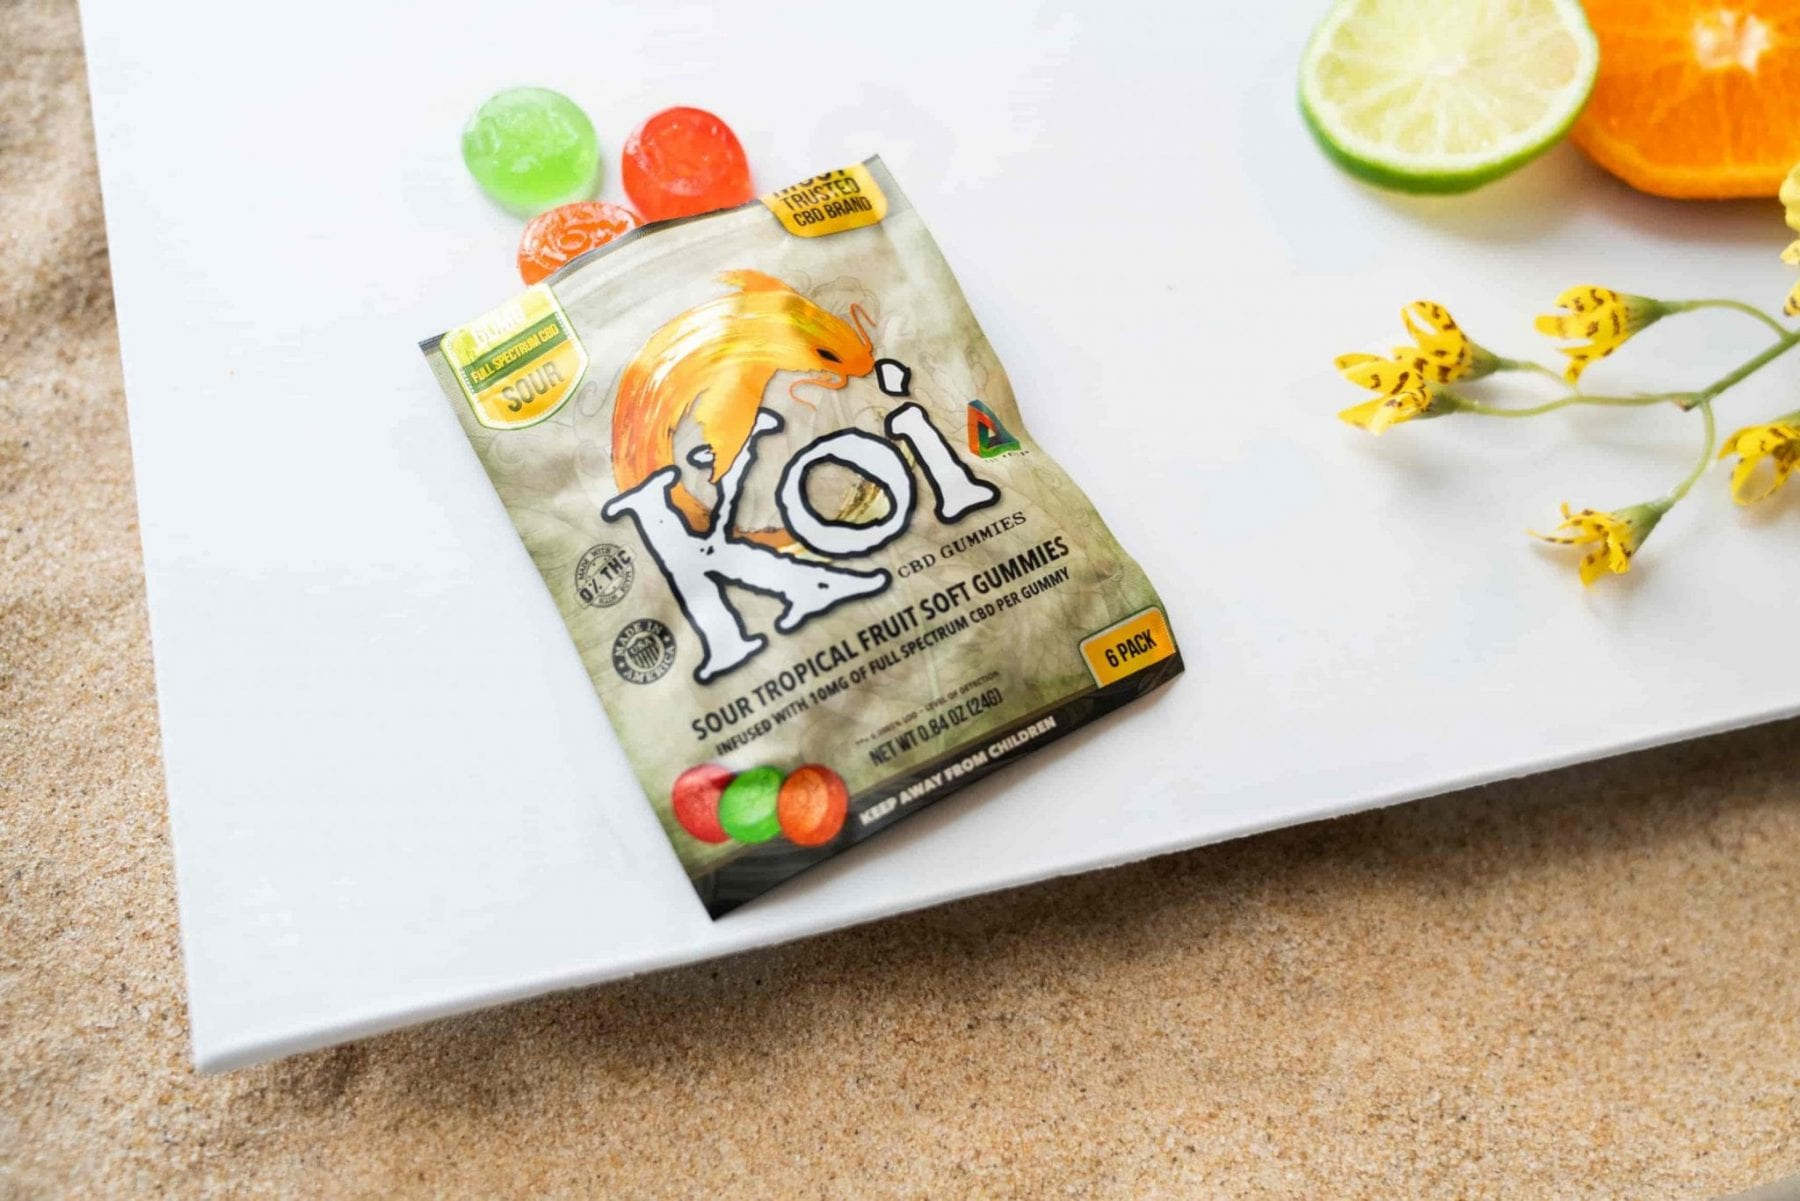 Koi gummies on a table